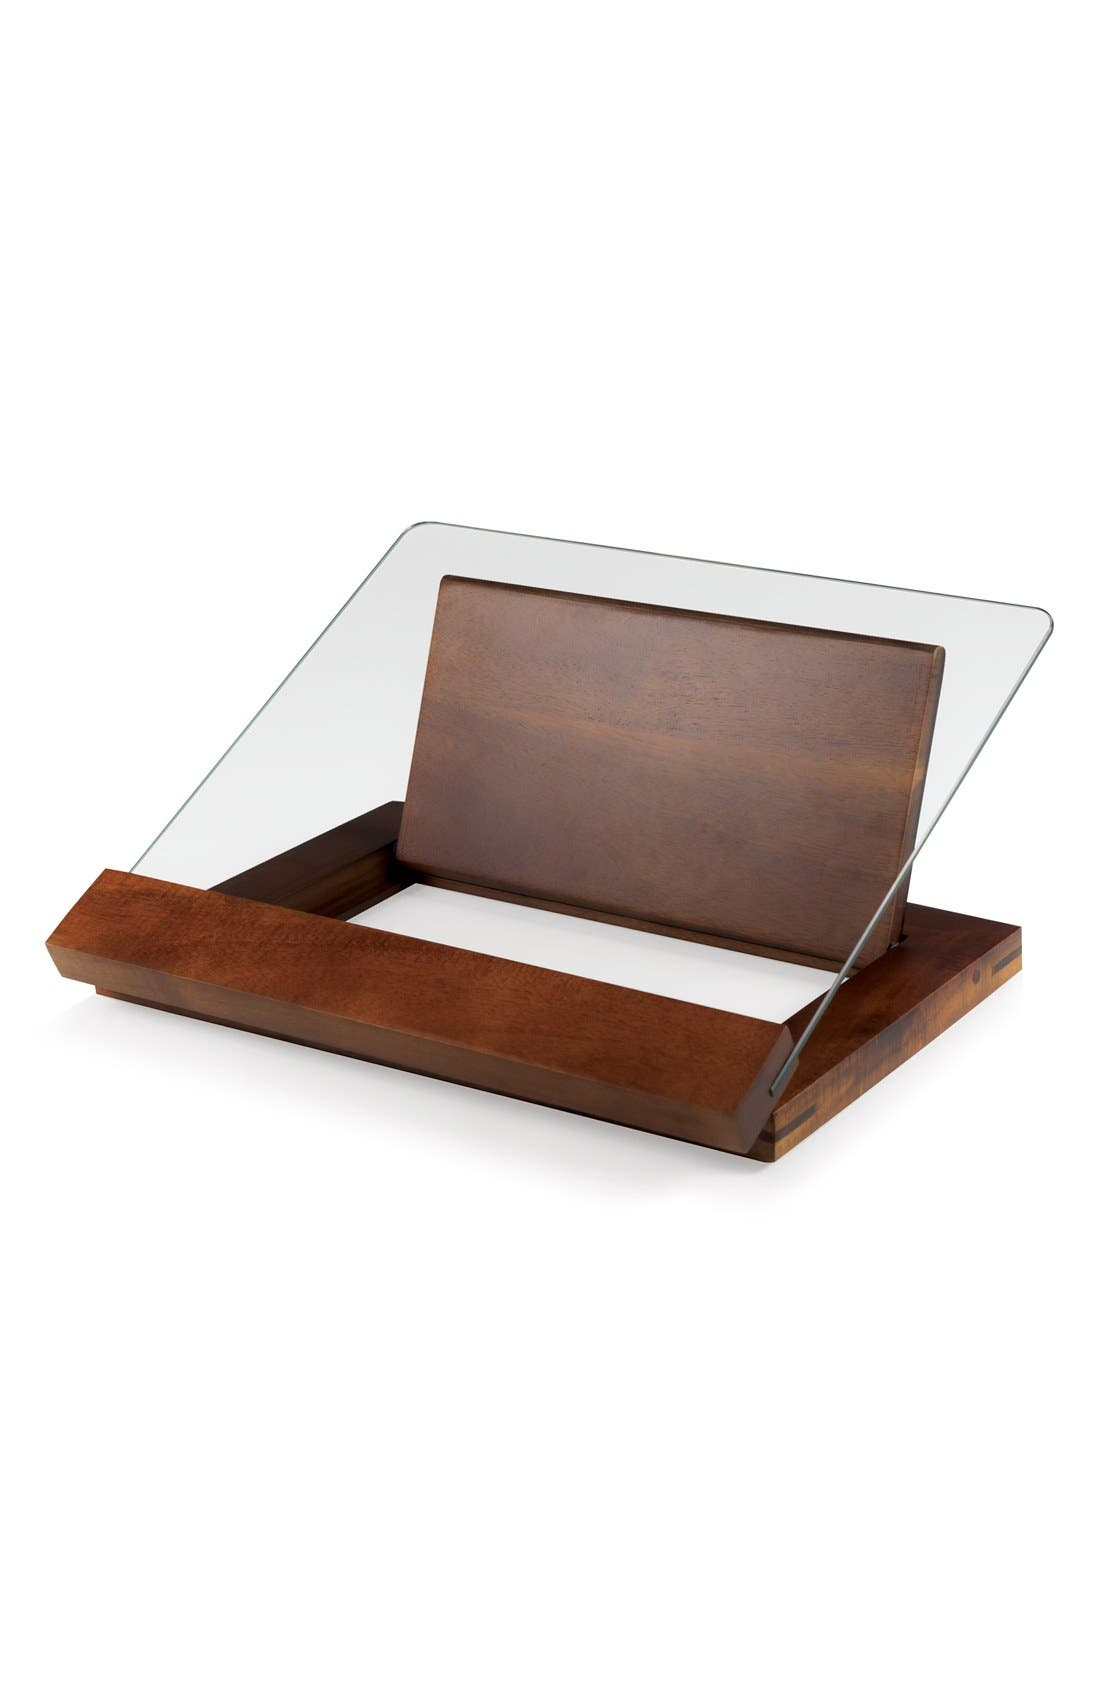 'Legacy Heritage Collection by Fabio Viviani - Prodigio' Recipe Stand,                             Main thumbnail 1, color,                             BROWN